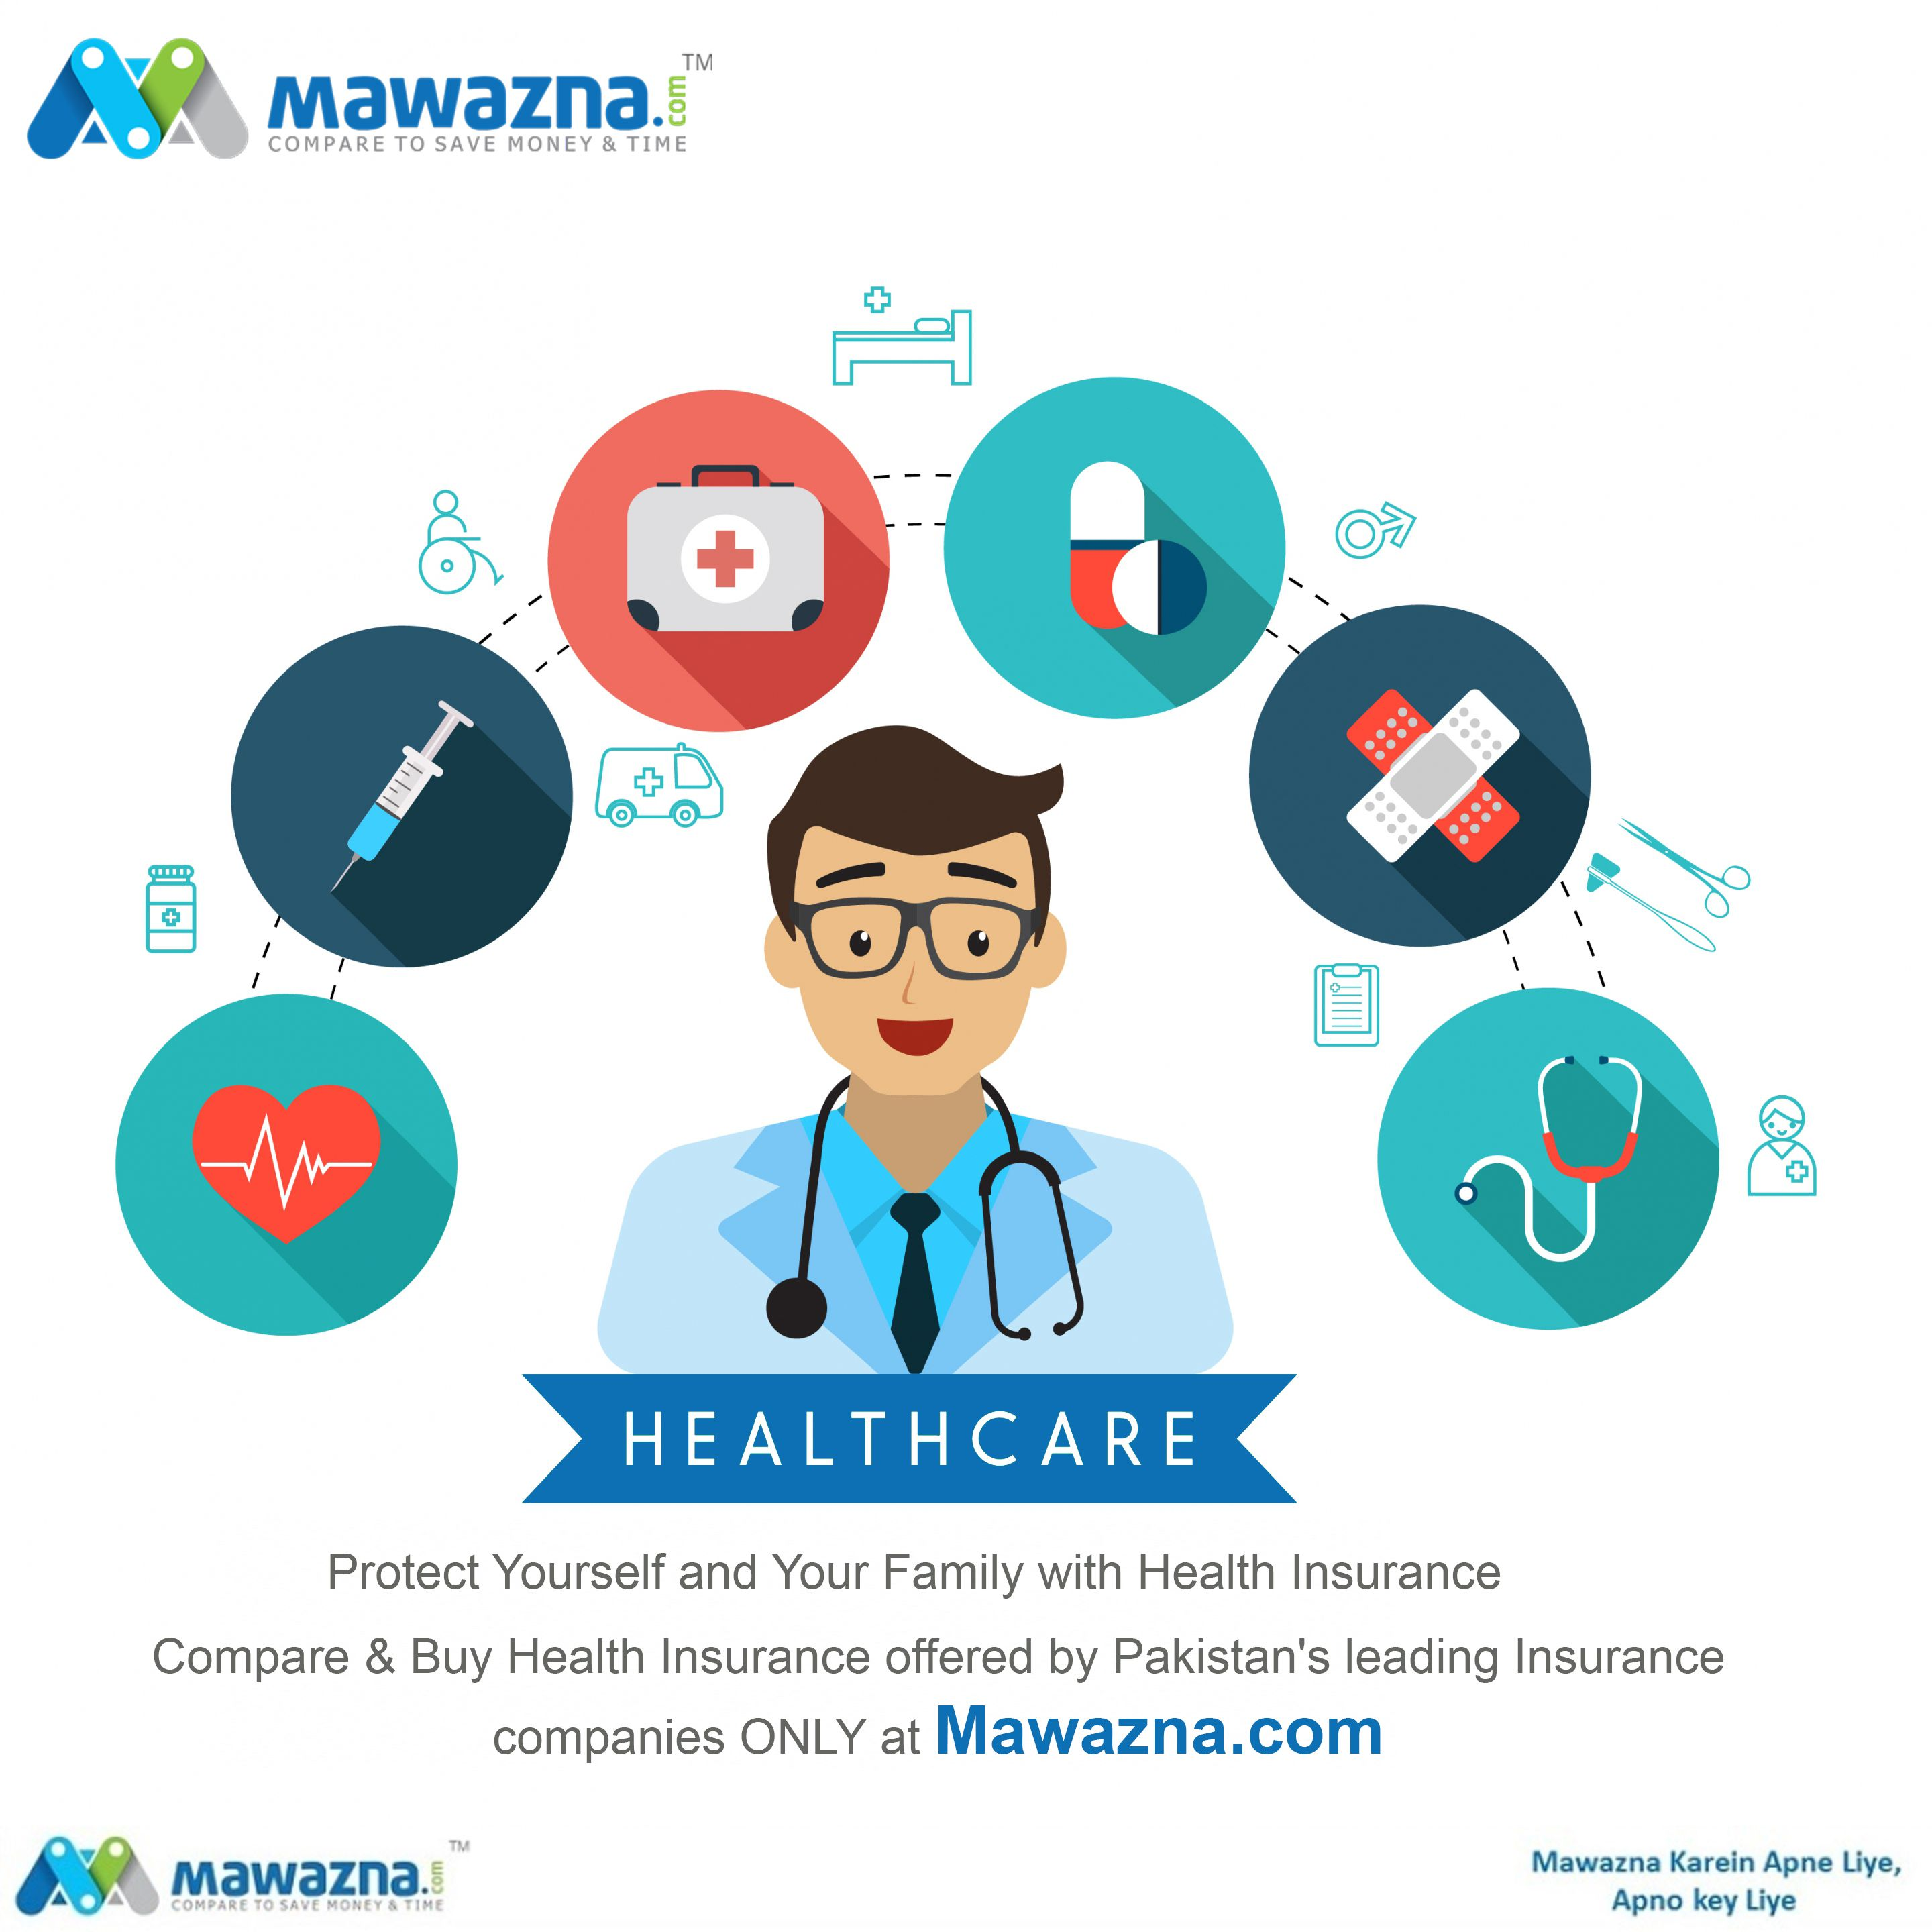 Compare best health insurance plans offered by the leading